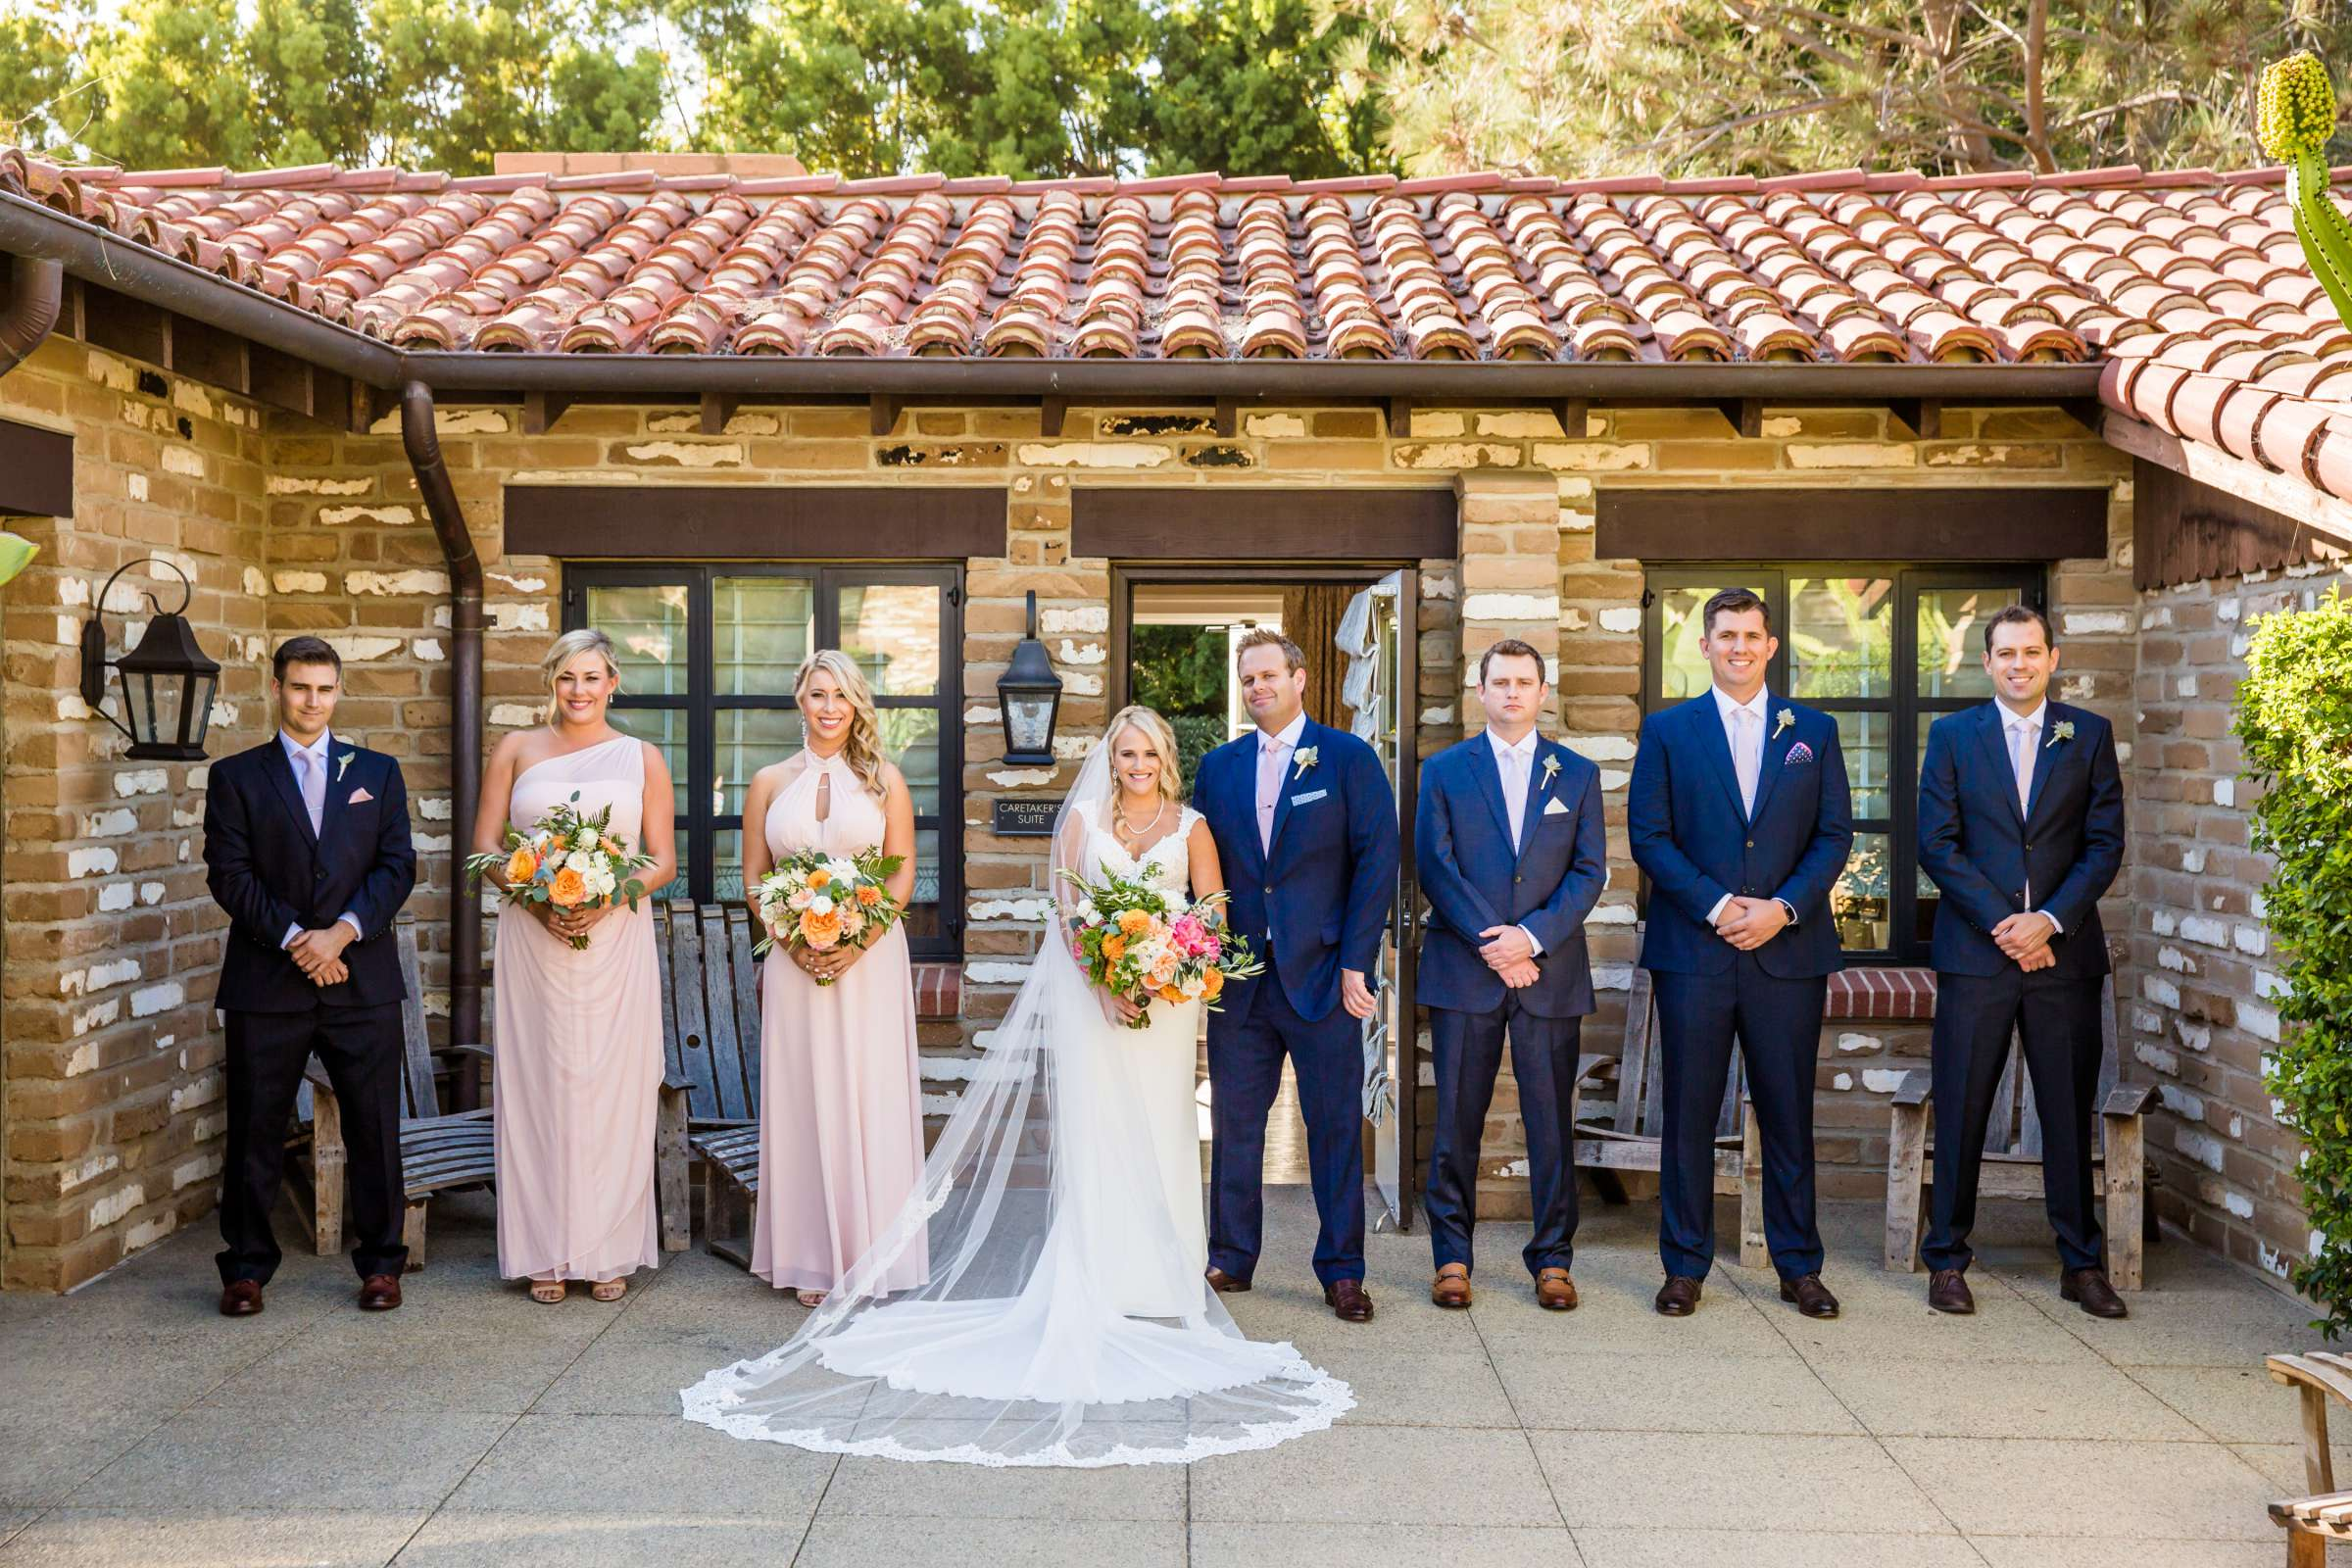 Estancia Wedding coordinated by Sweet Blossom Weddings, Rachel and Patrick Wedding Photo #427663 by True Photography